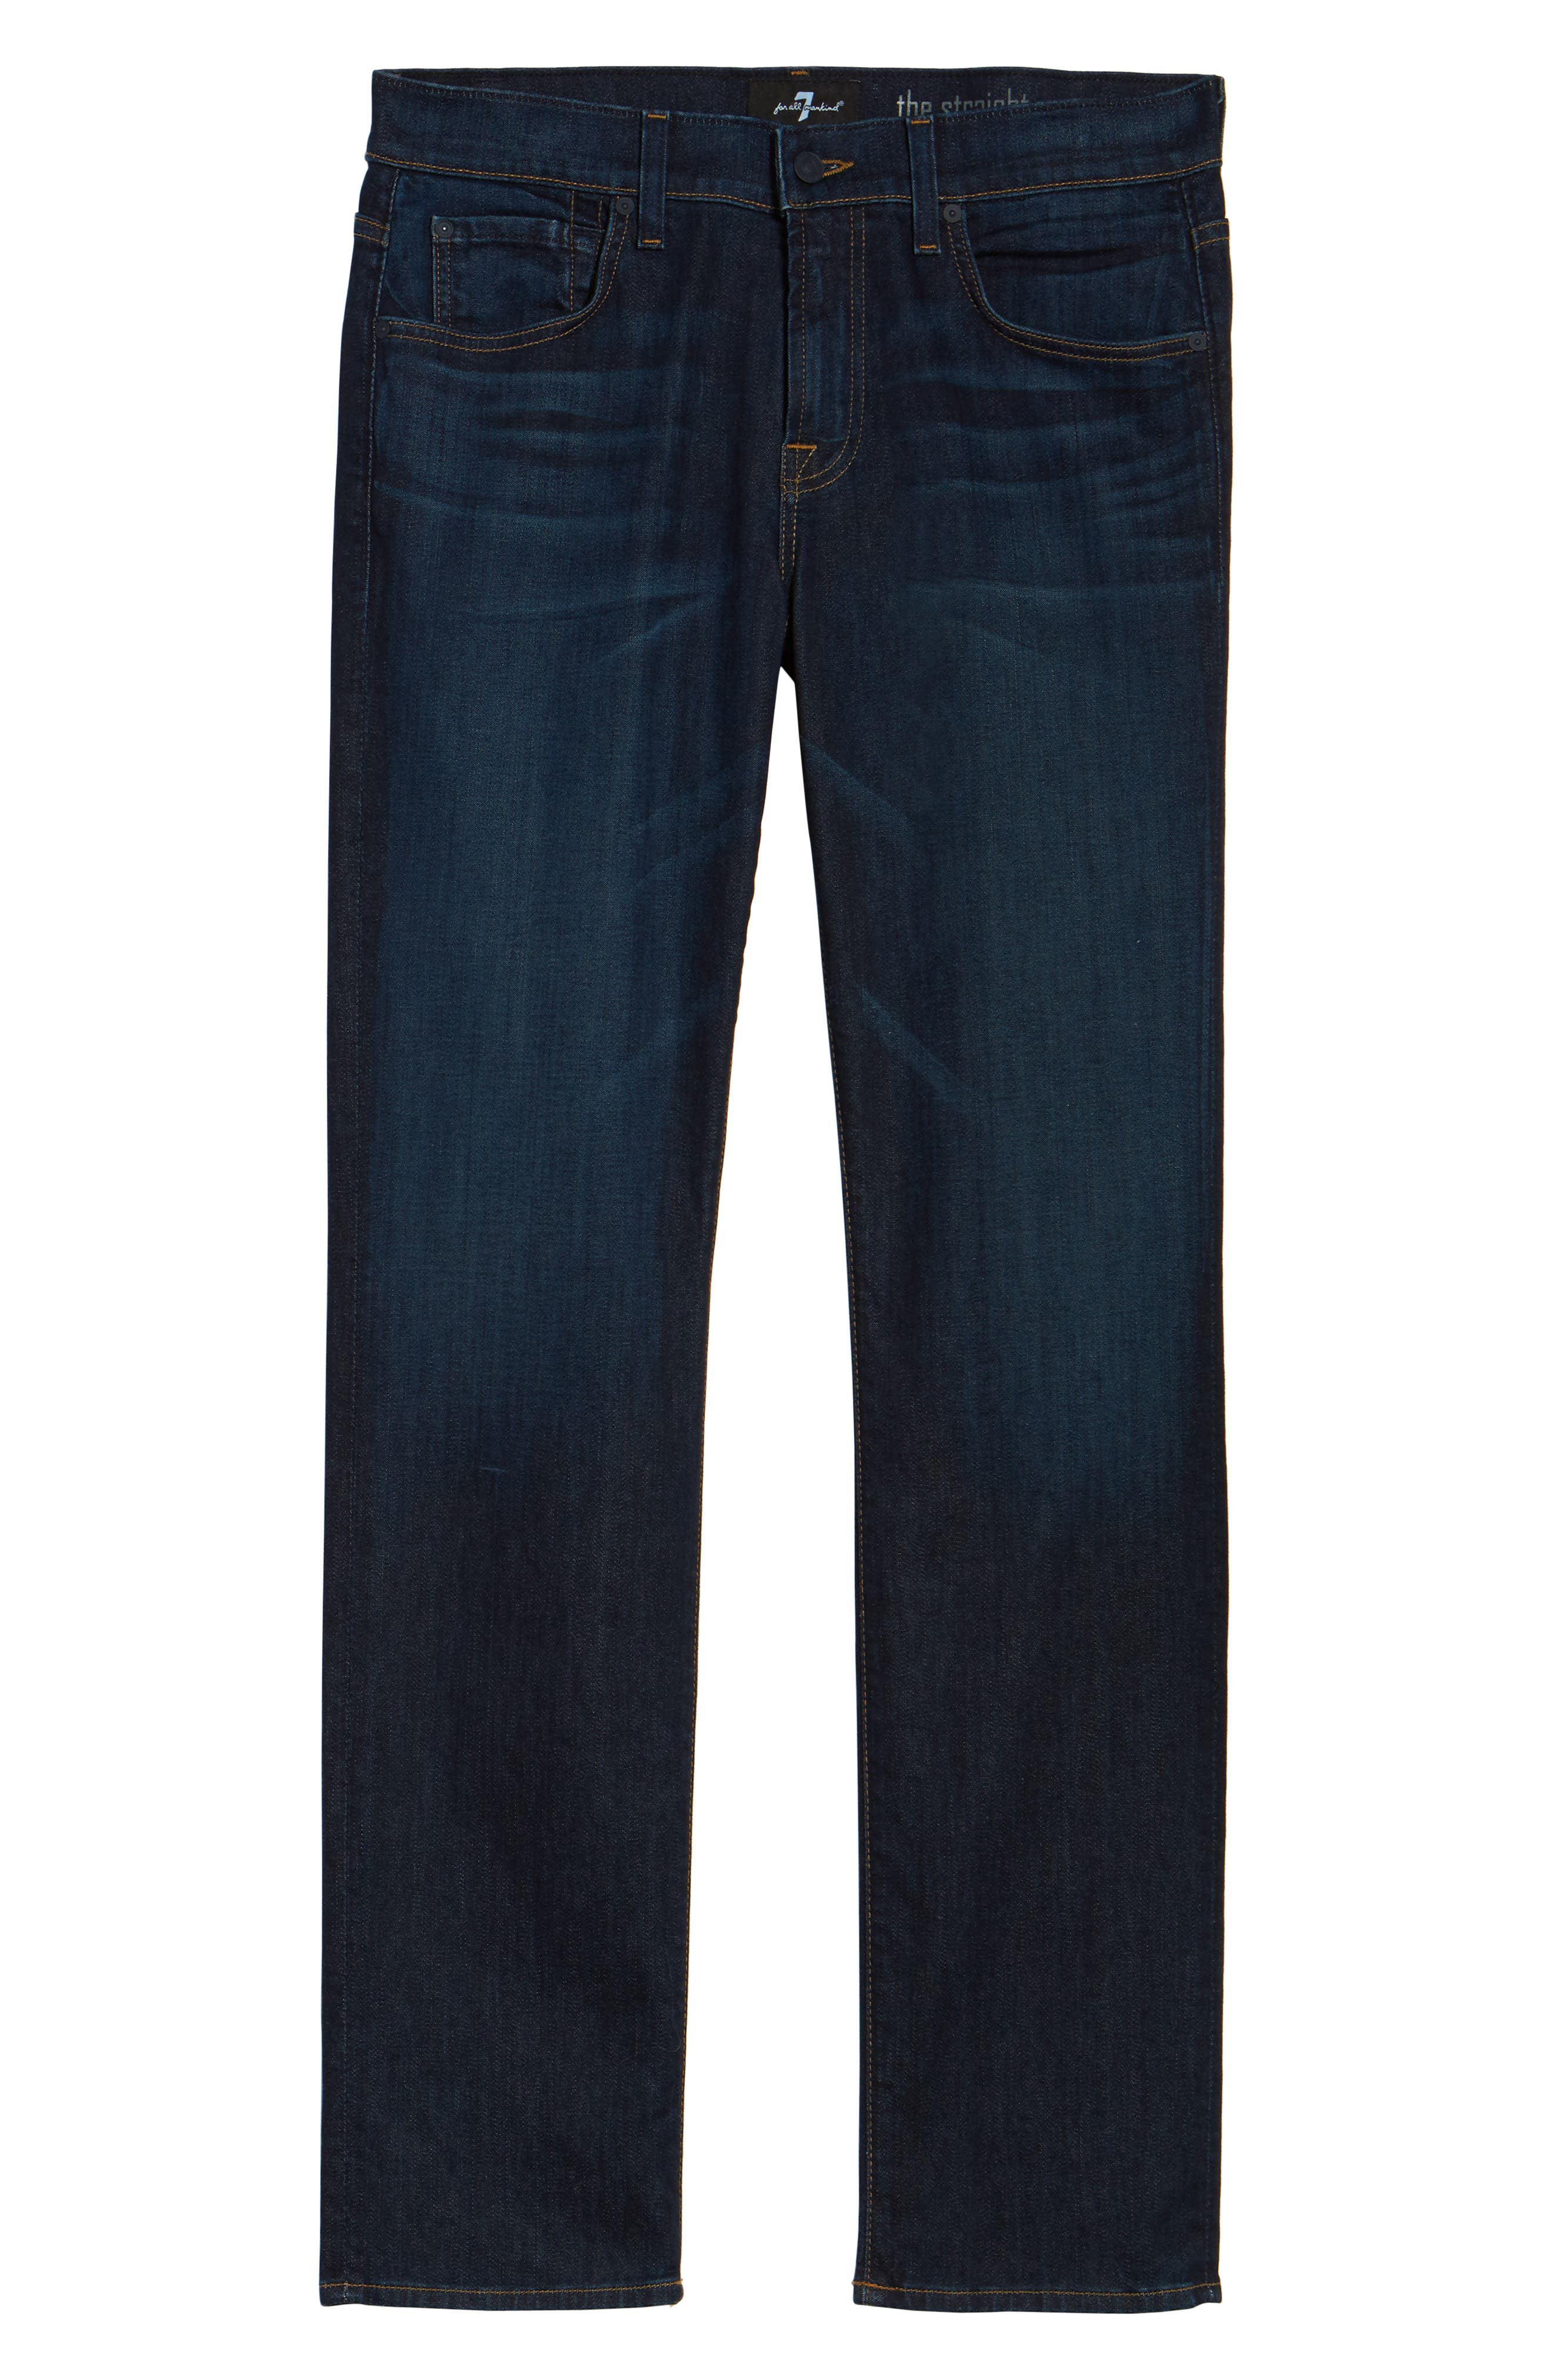 Luxe Performance Straight Leg Jeans,                             Alternate thumbnail 6, color,                             NORTH PACIFIC